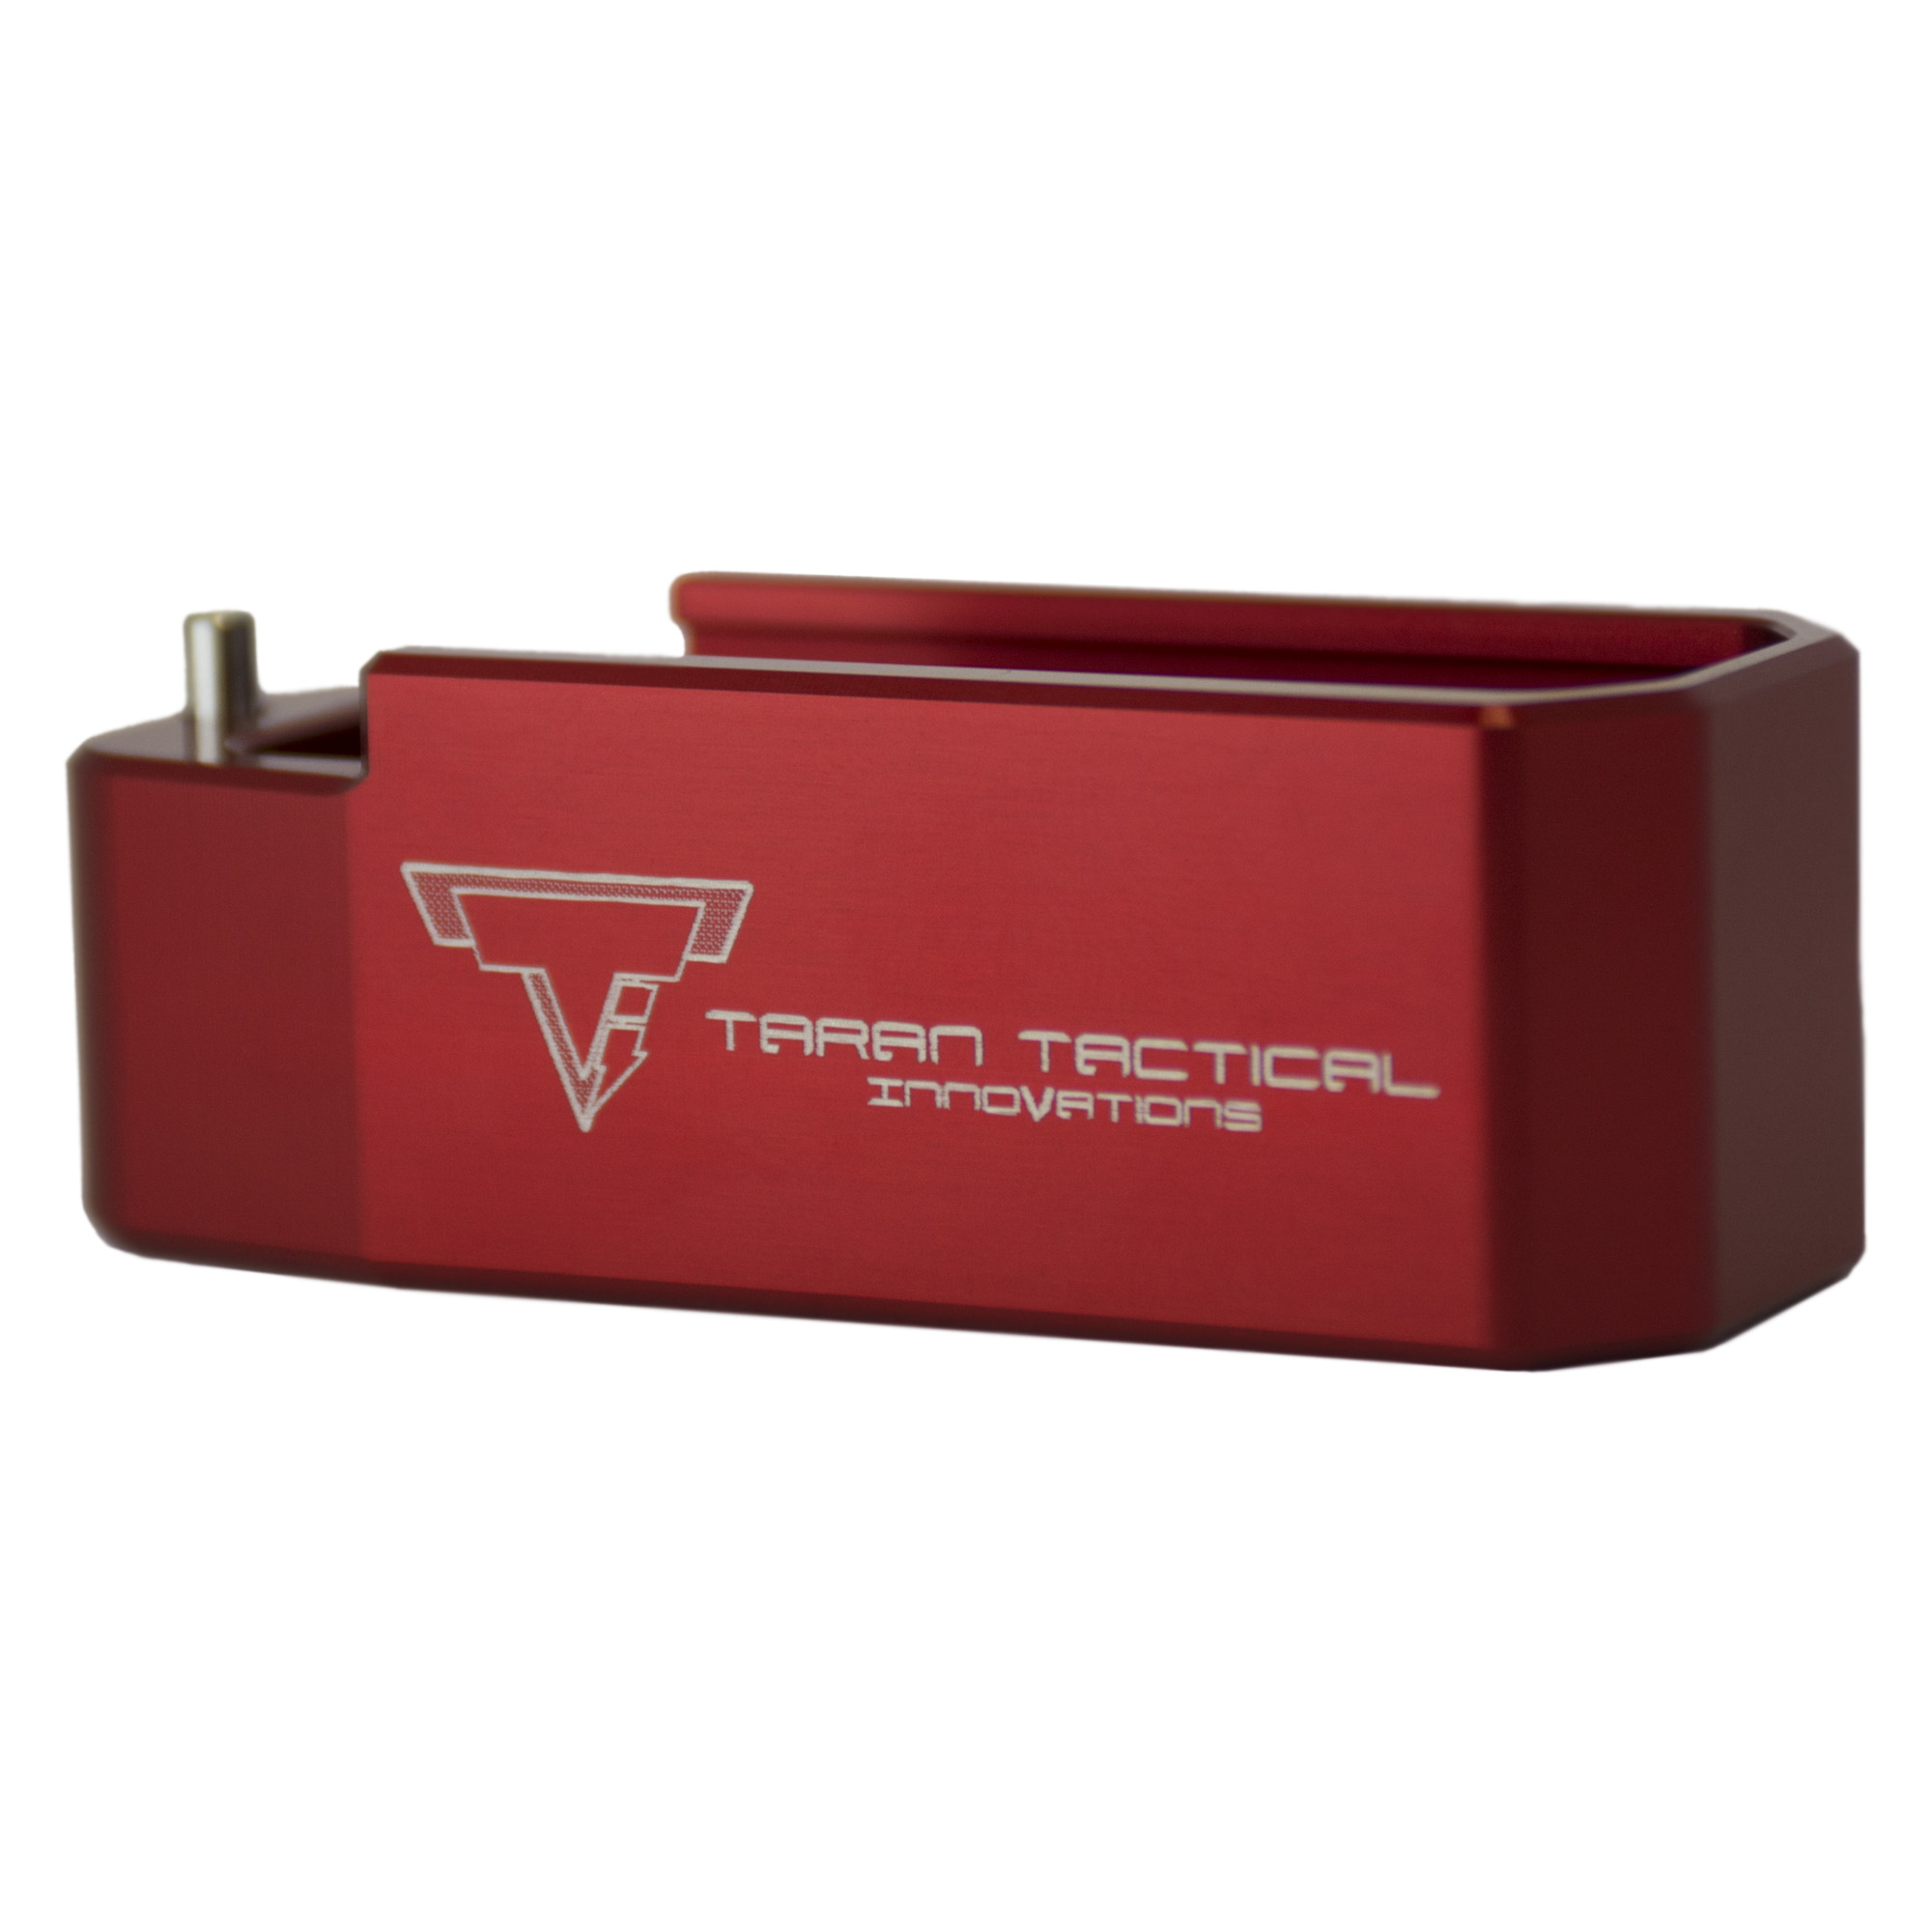 This Taran Tactical Innovations .223 PMAG base pad works on any .223 30 or 40 round PMAG magazine. It is machined out of billet aluminum and is hard anodized to ensure durable long lasting color. All machining and manufacturing is done in the USA.